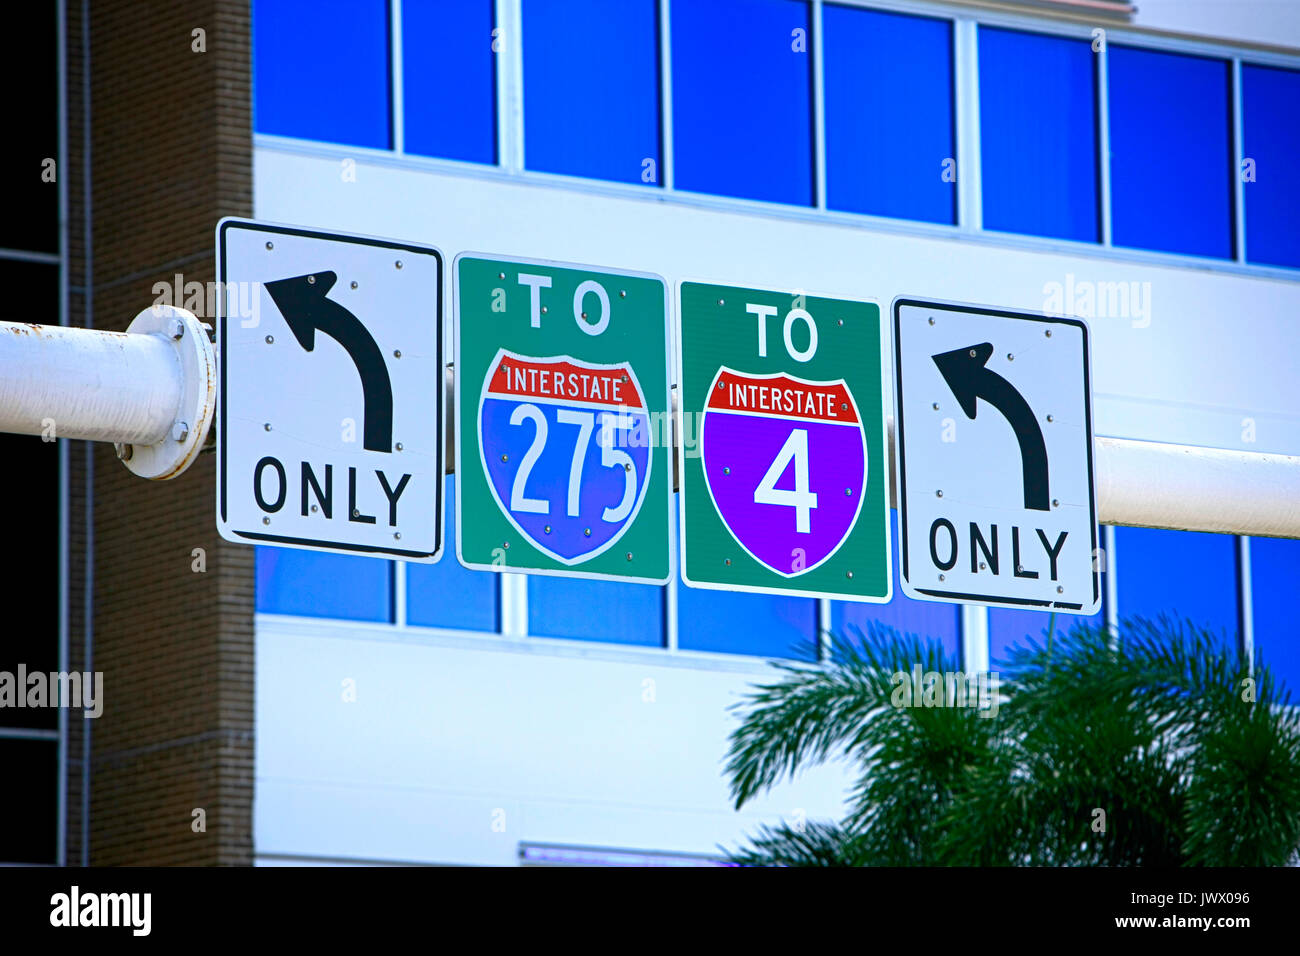 Overhead traffic signs pointing to I-275 and I-4 in downtown Tampa FL, USA - Stock Image